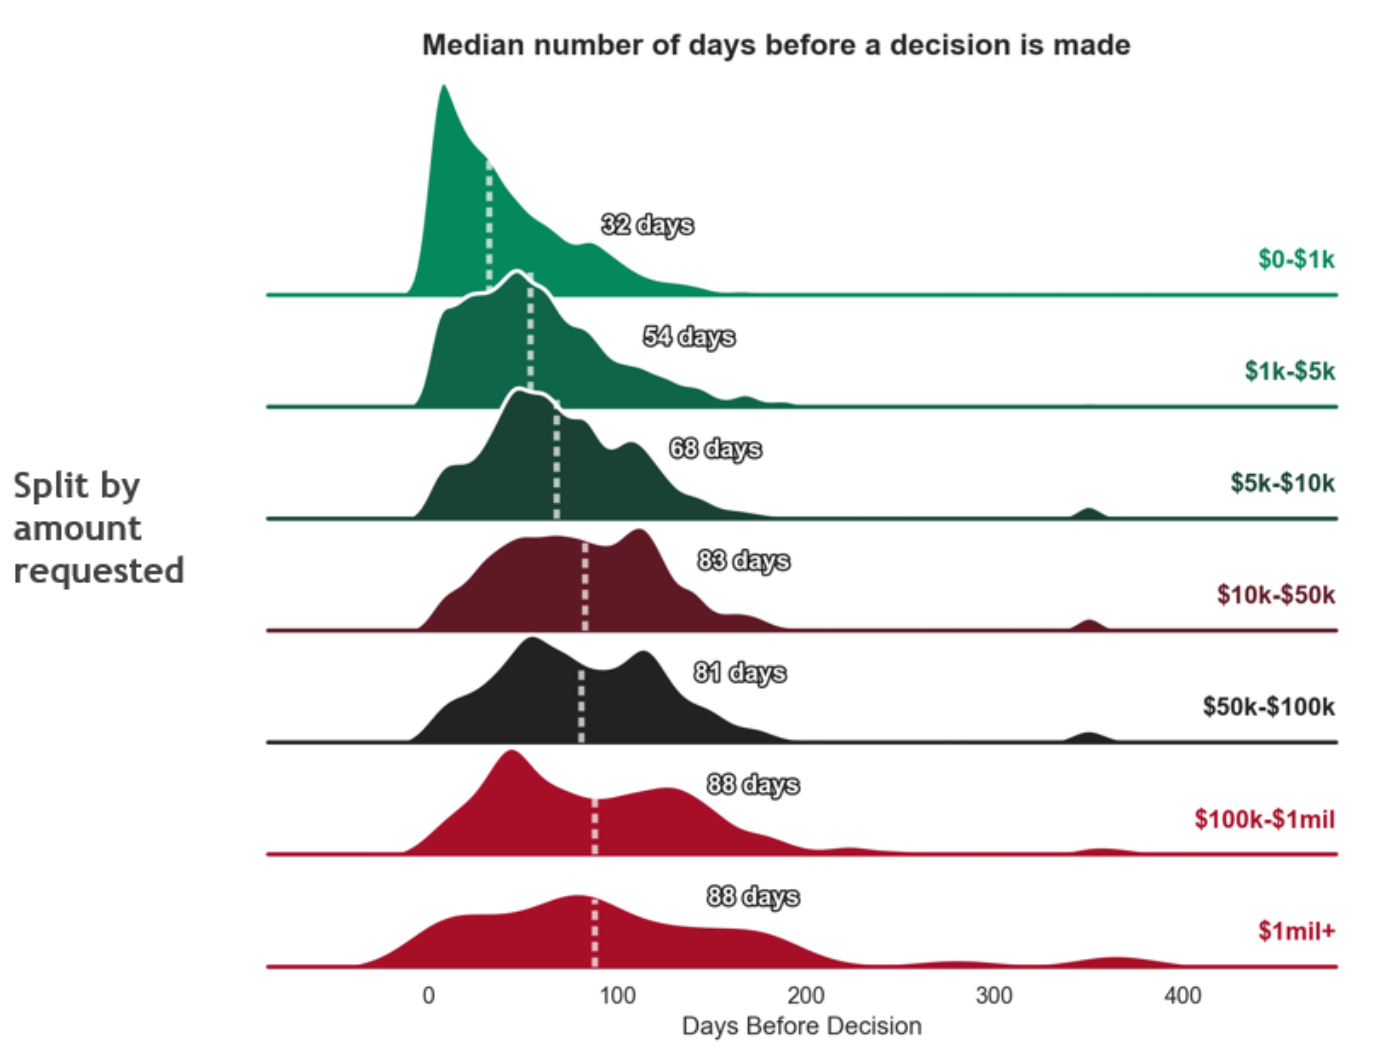 Median decision distribution by amt